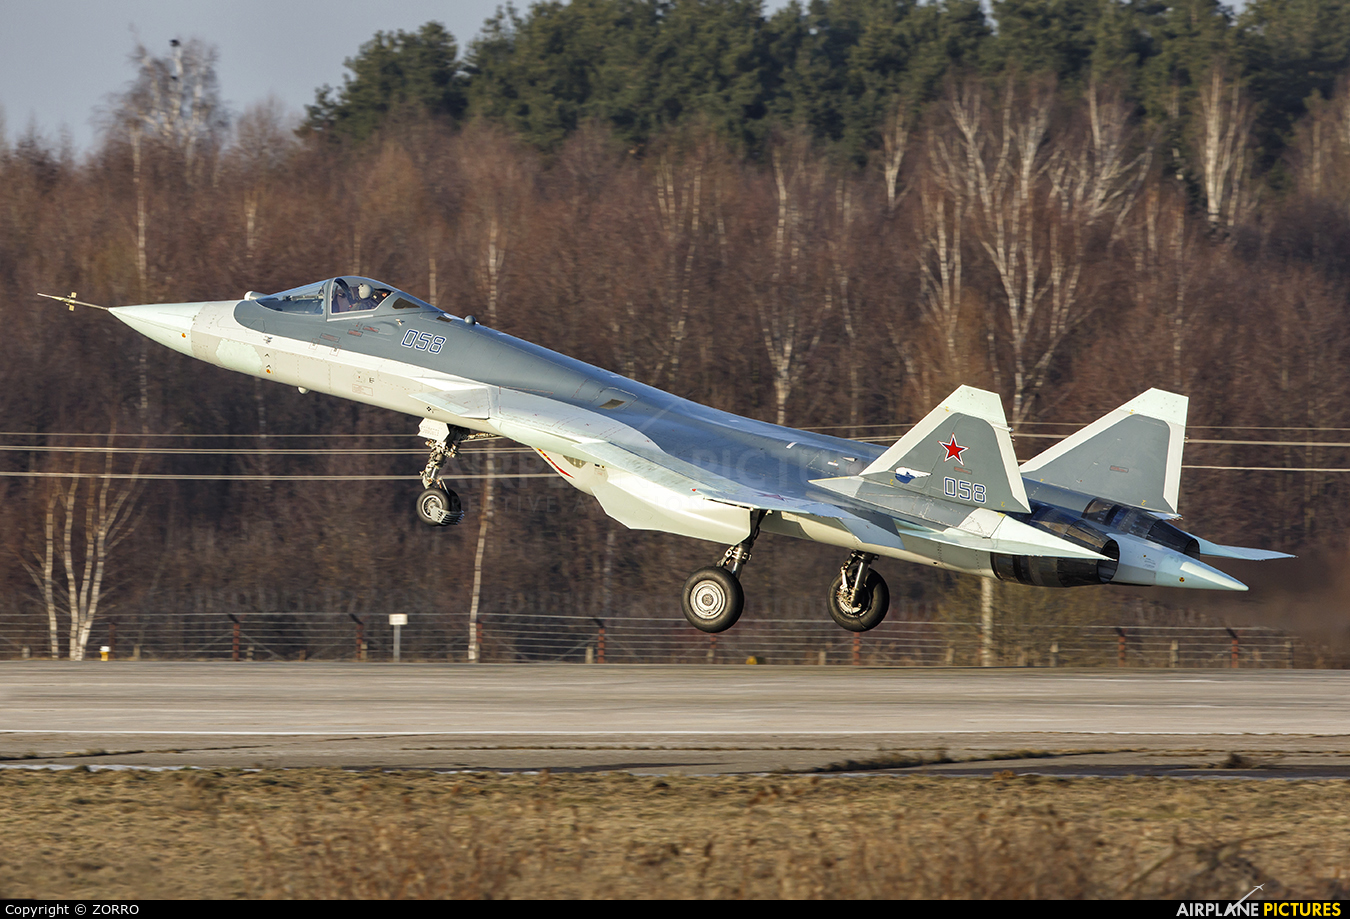 Russia - Air Force 058 aircraft at Undisclosed Location